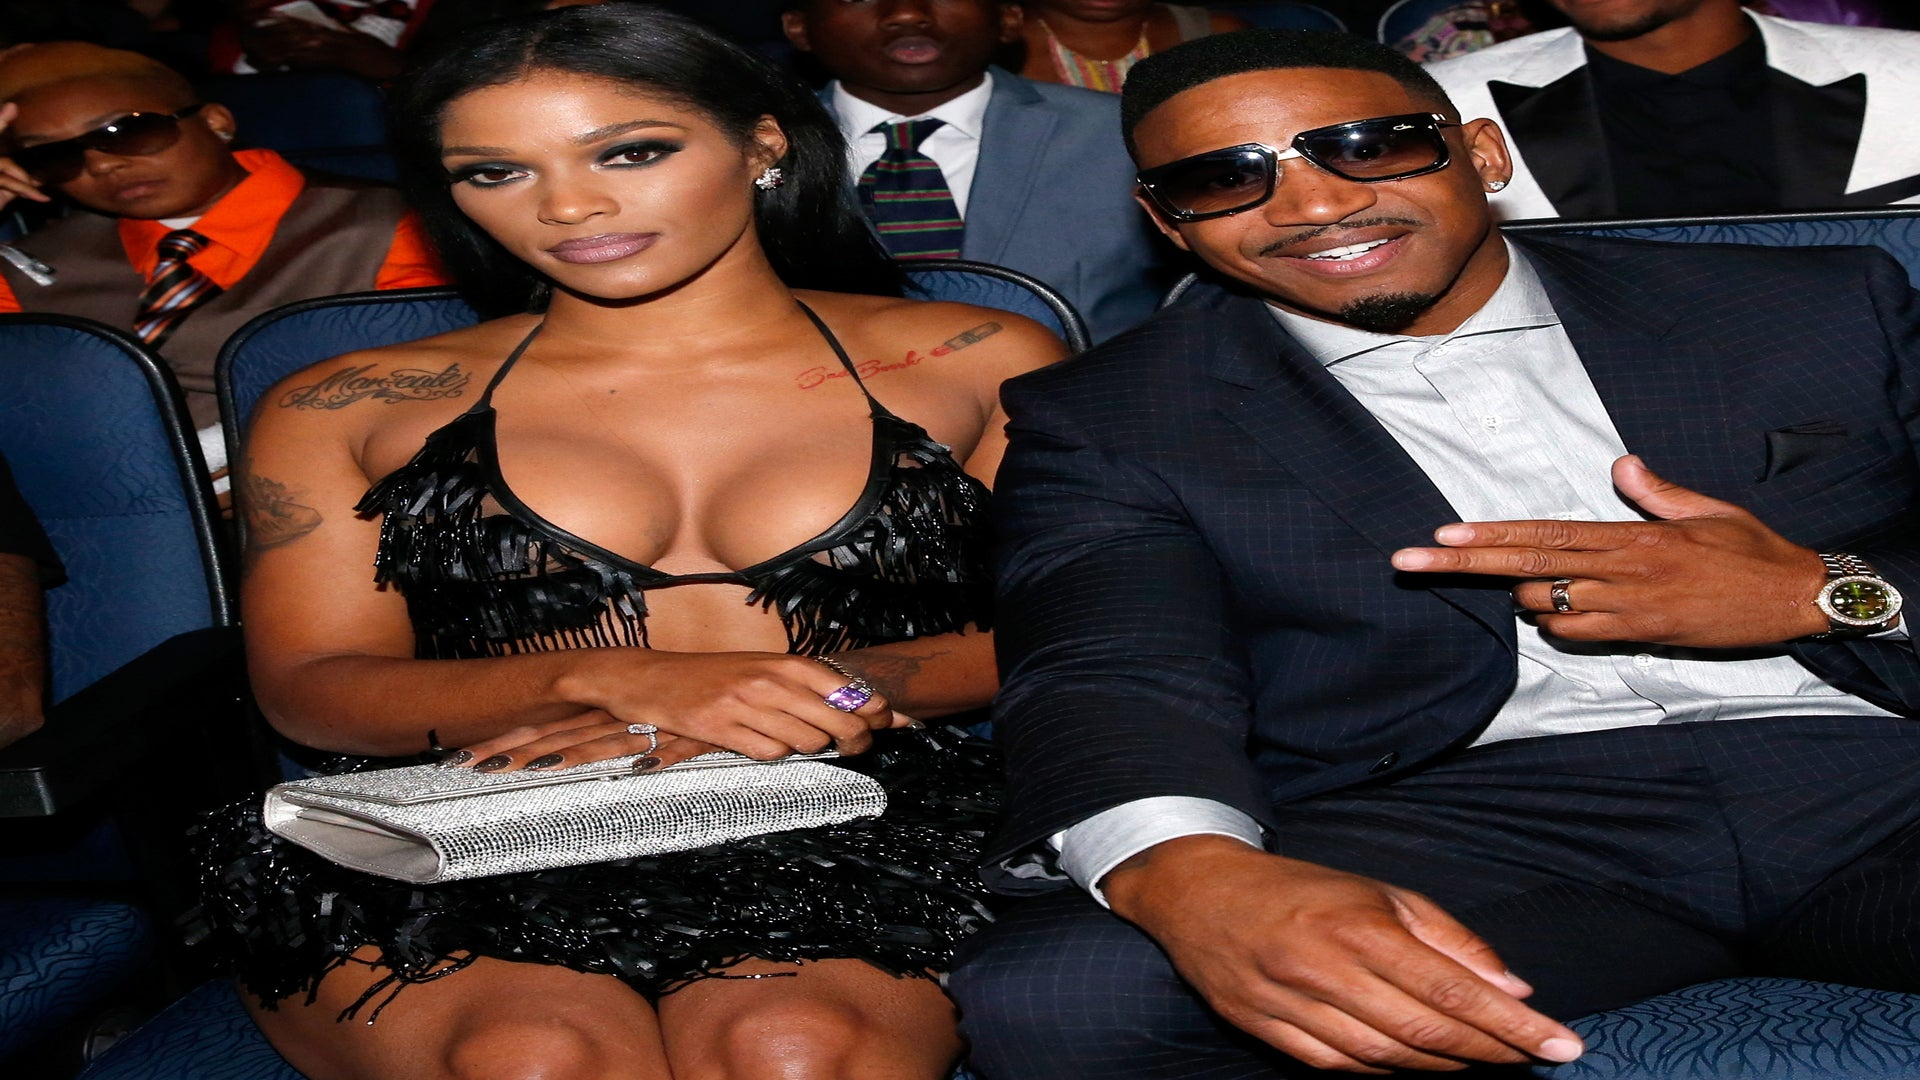 She's Here! Stevie J Shares First Photo Of Baby Bonnie Bella With 'Love & Hip Hop' Star Joseline Hernandez